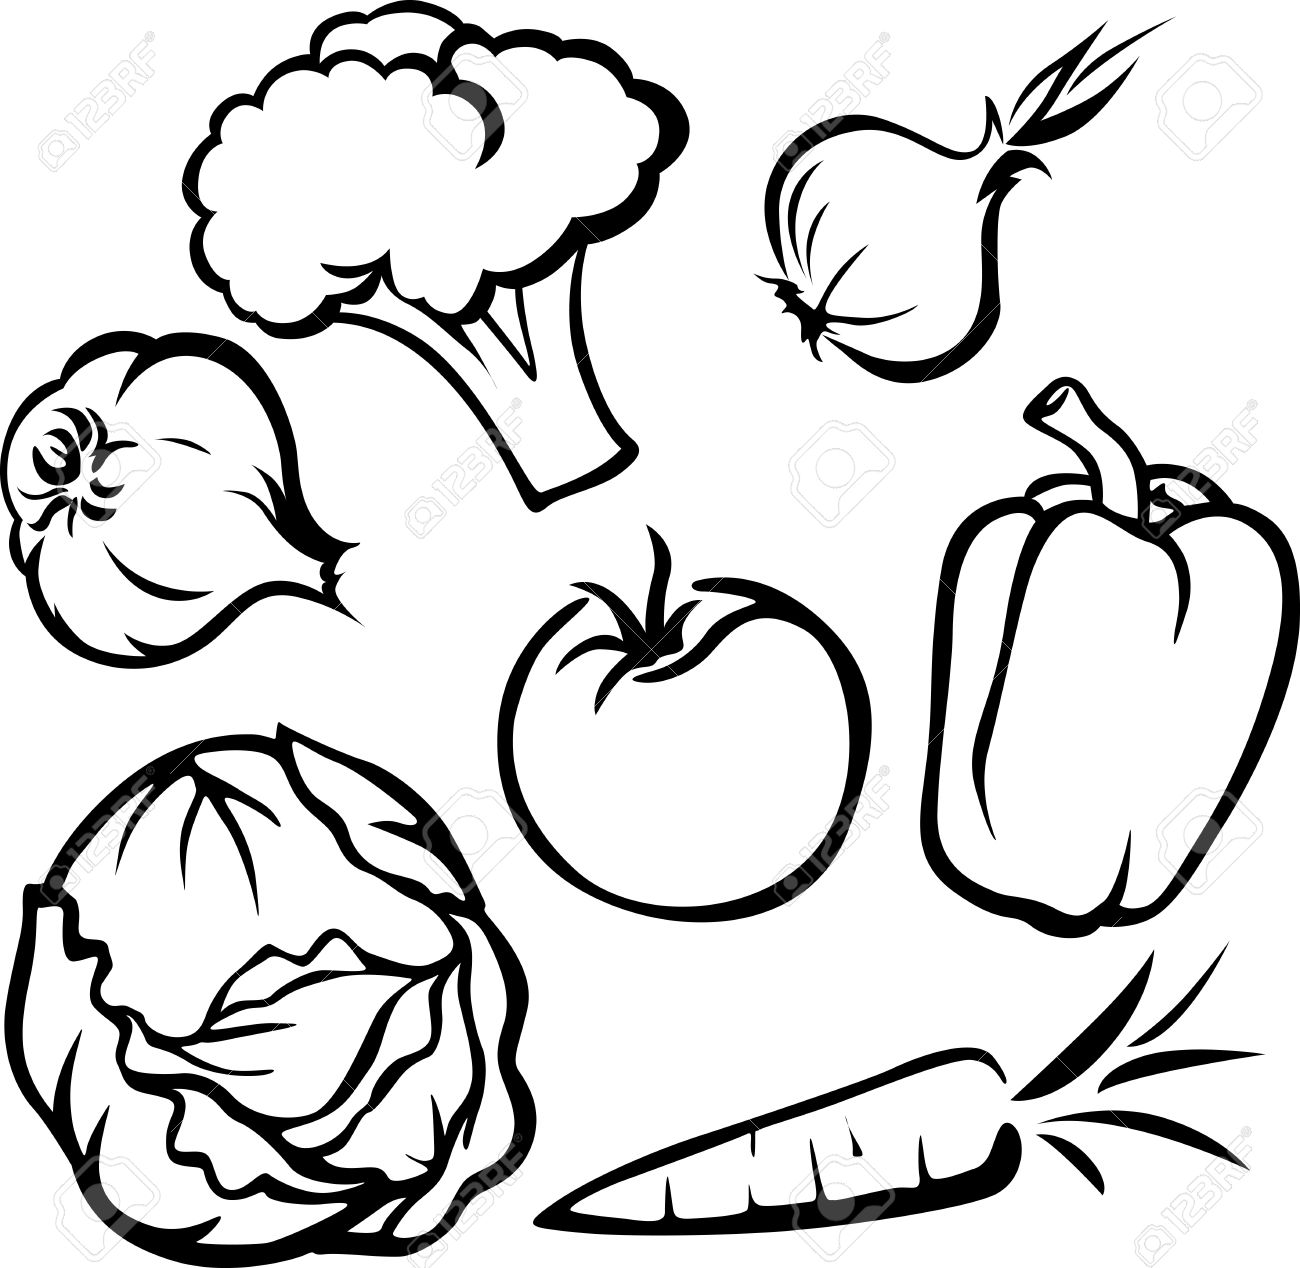 vegetable illustration black outline on white background royalty